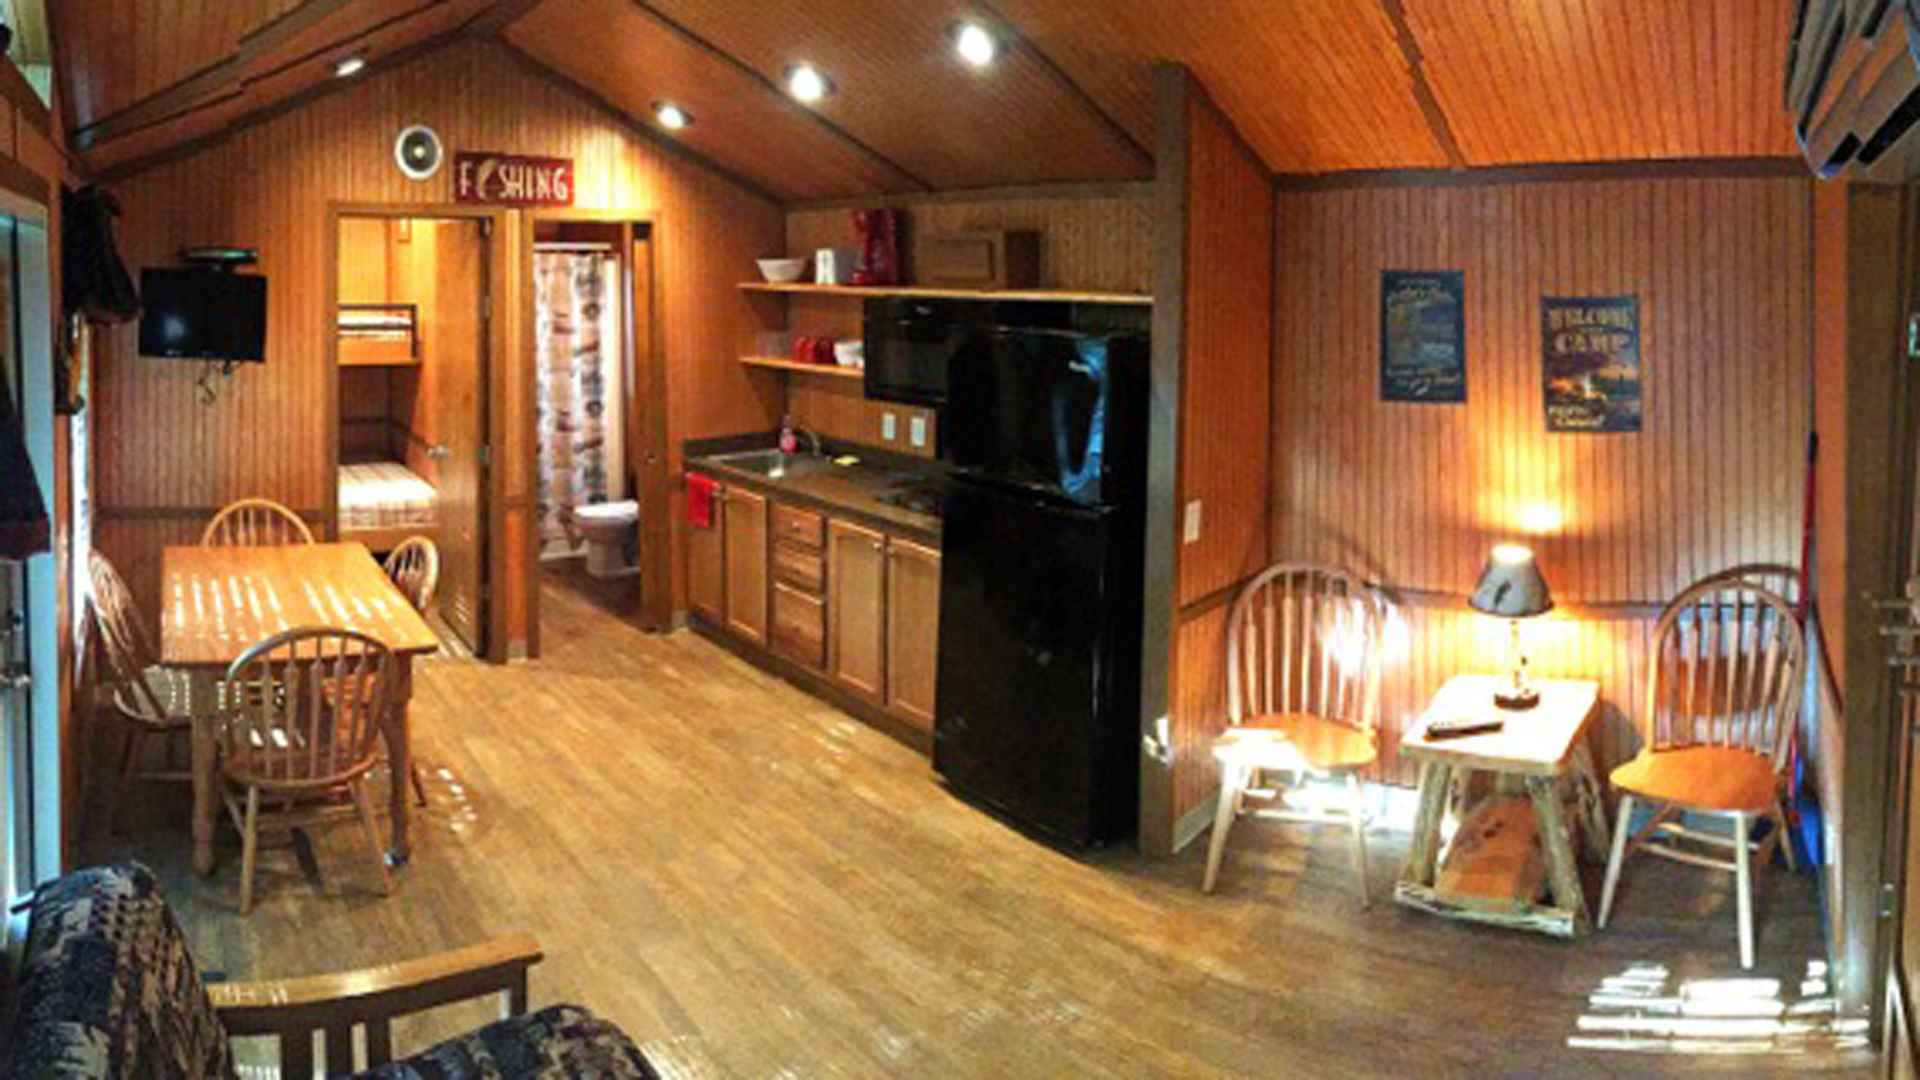 inside amenities included in the deluxe cabin with open floor layout